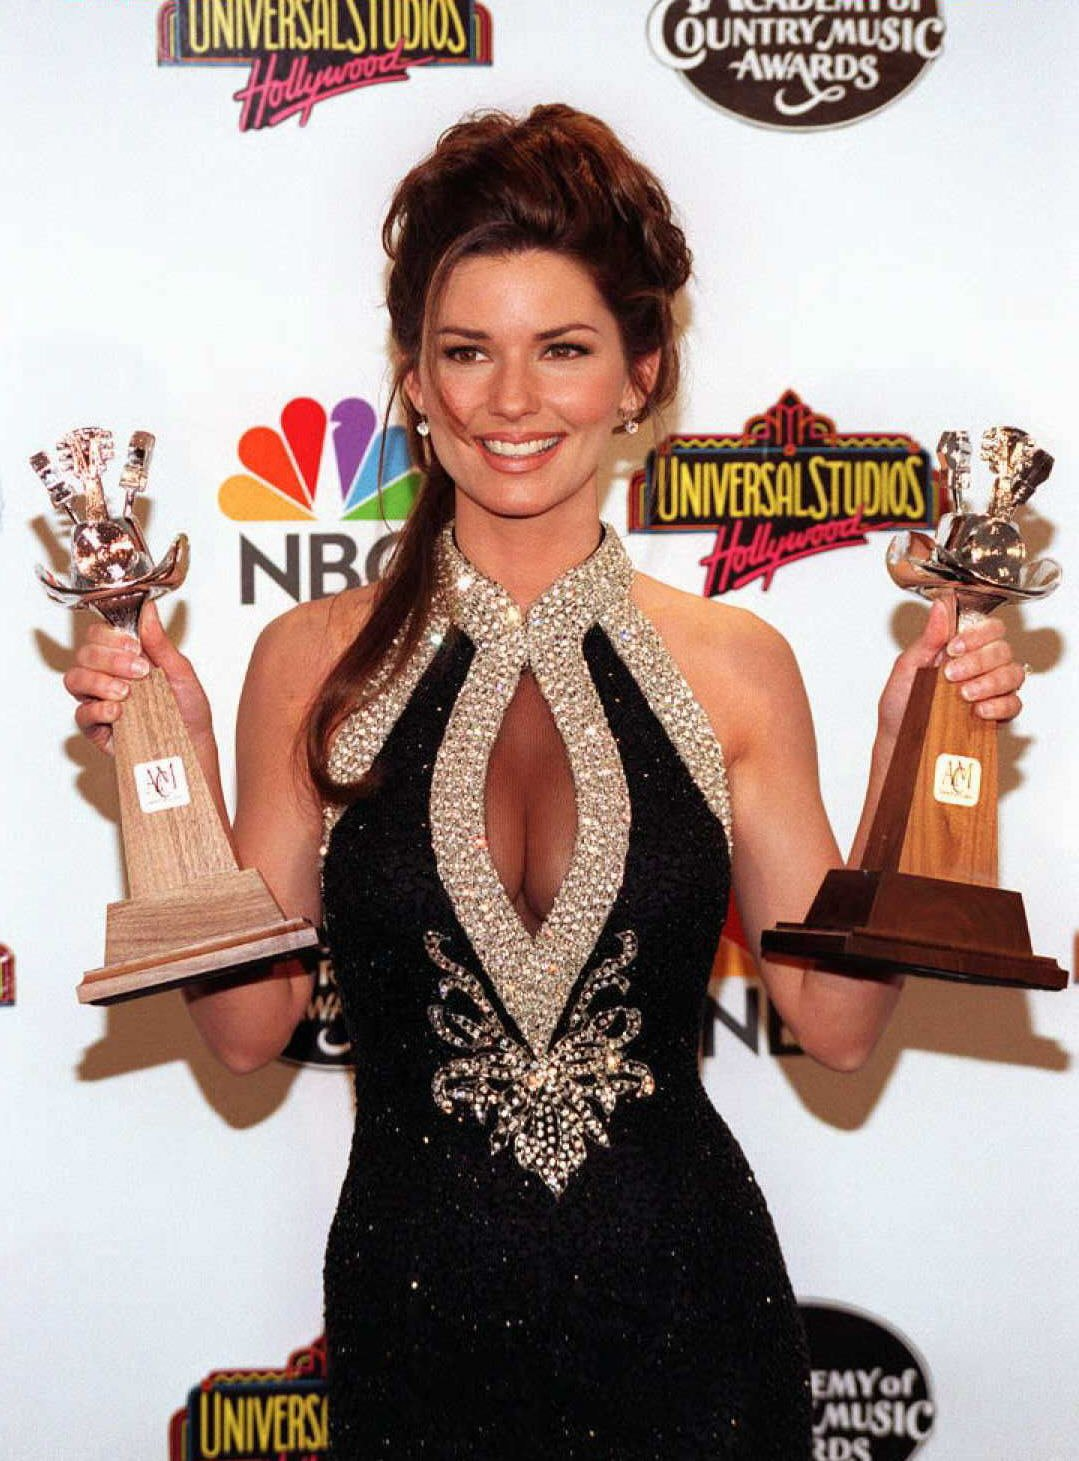 """Shania Twain holding the awards she received at the 31st Annual """"Academy of Country Music Awards"""" in California, 1996   Photo: Getty Images"""